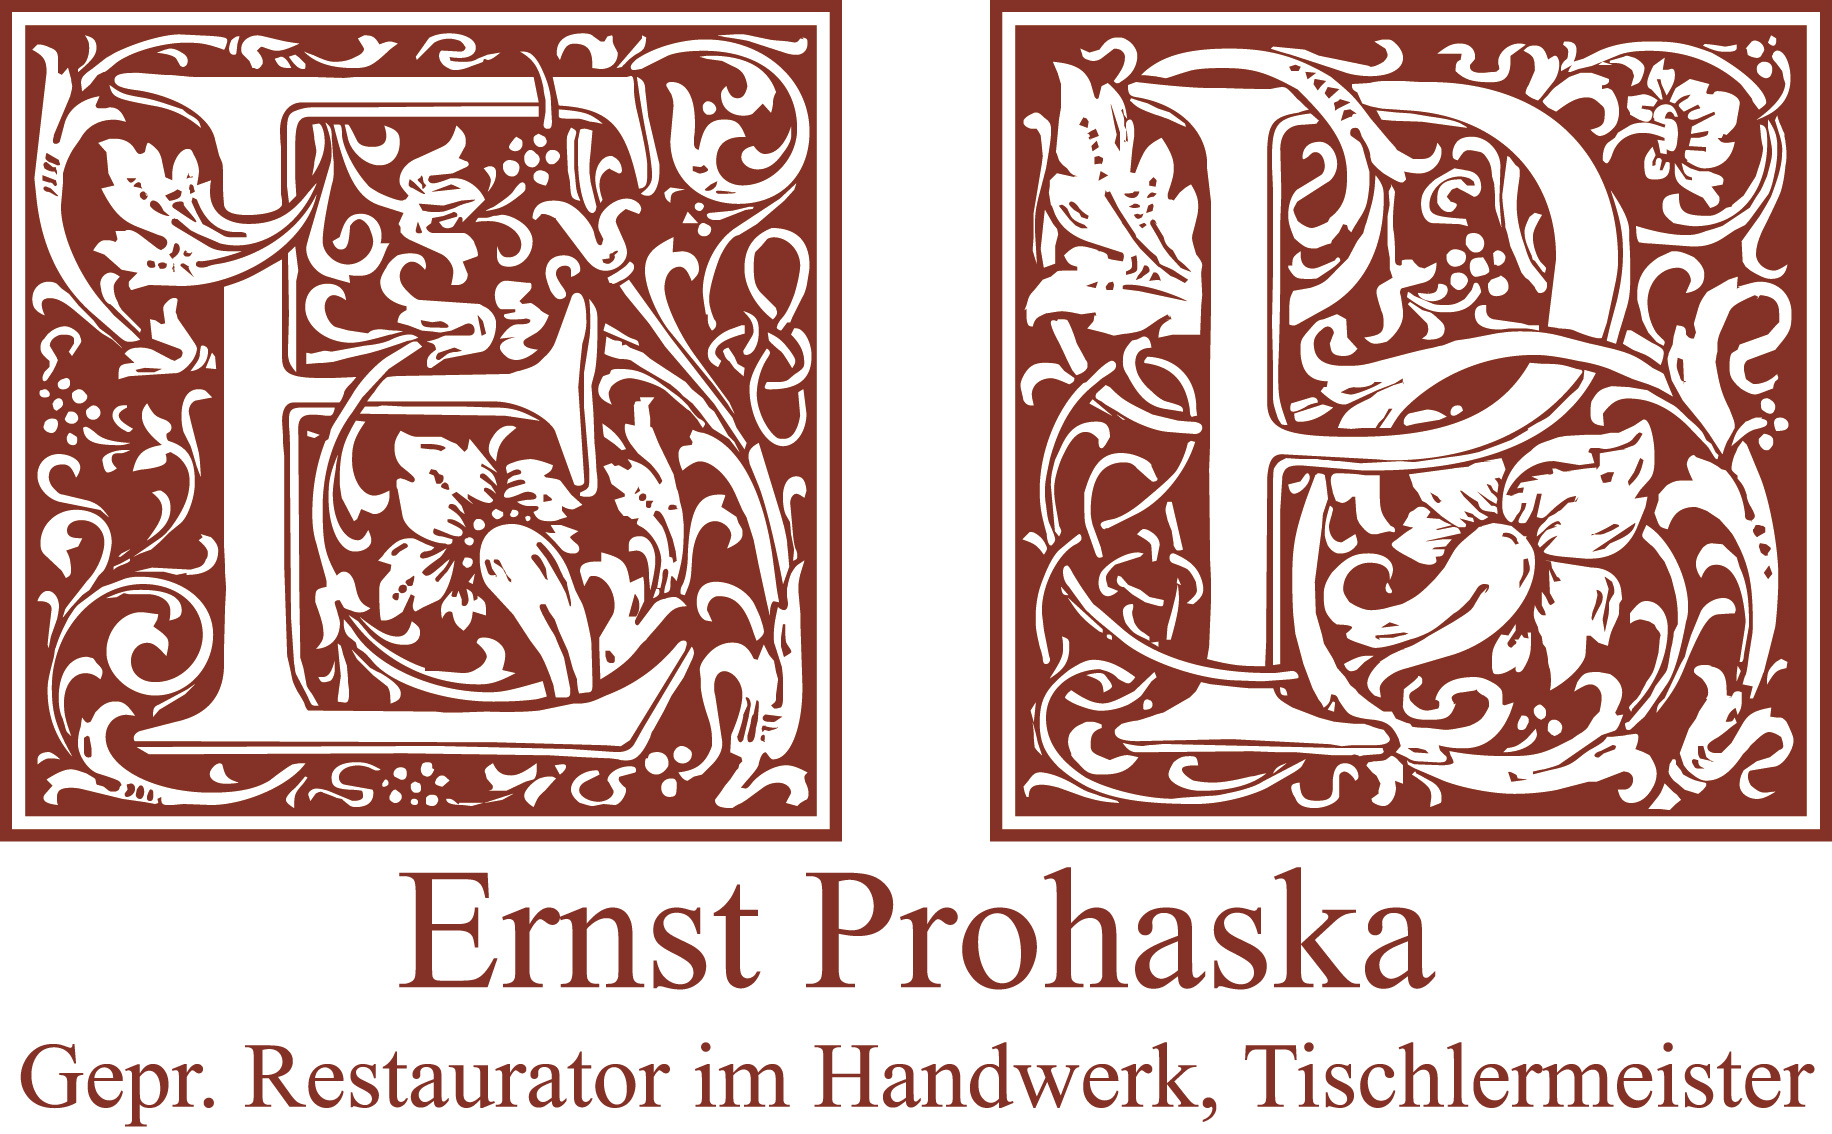 prohaska ernst 2017 WEB HIRES